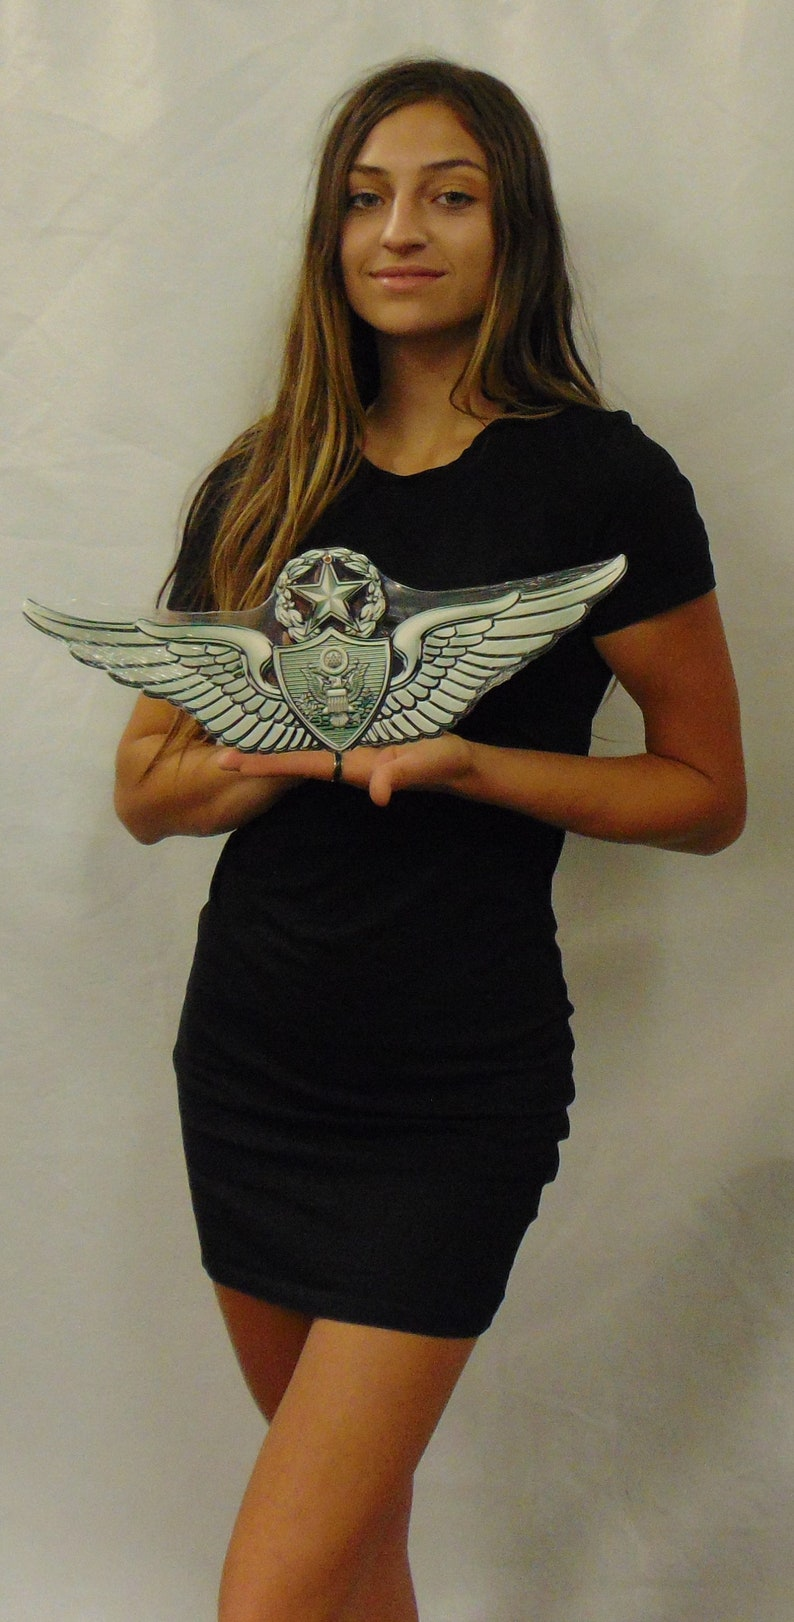 Army Master Aircrew MOS Wings all Metal Sign (Small) 7 x 3